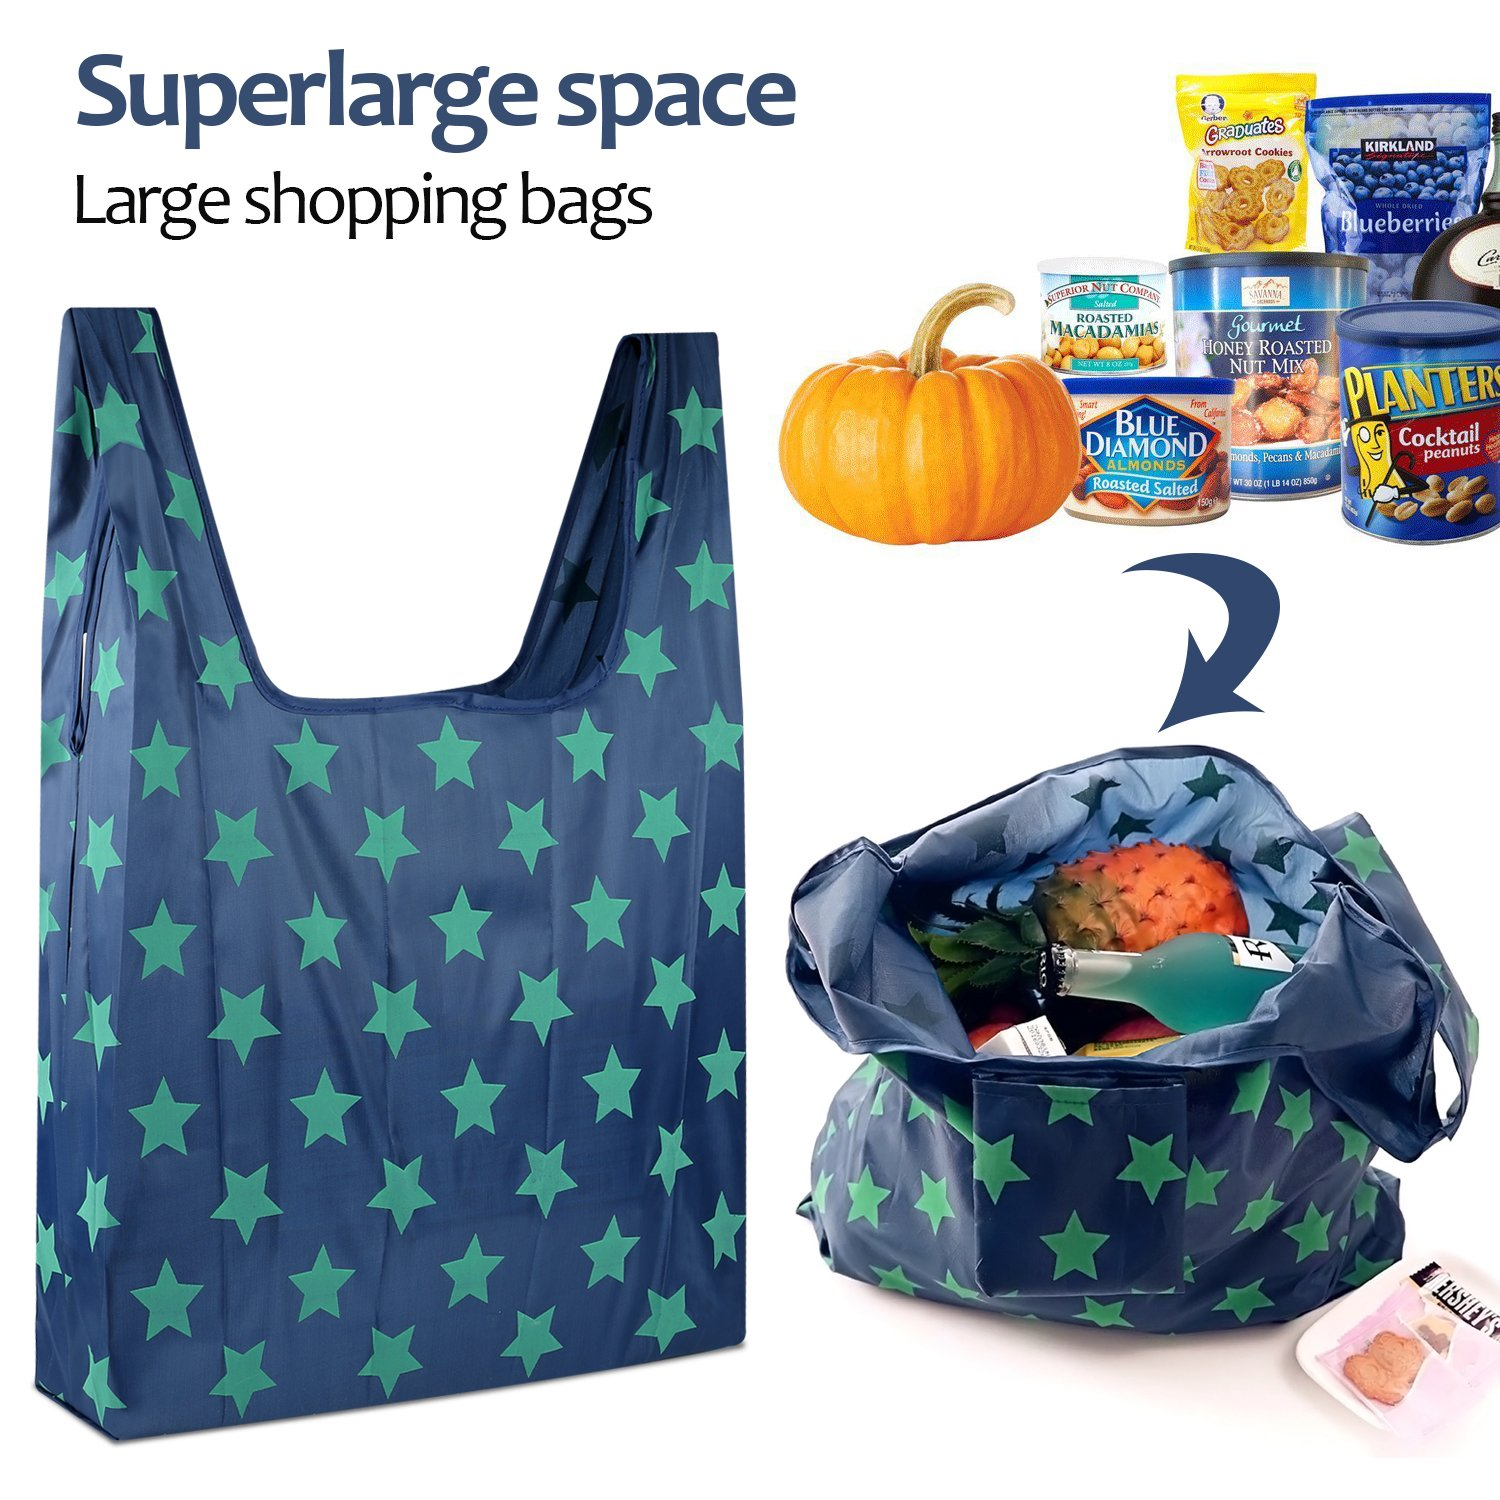 Lonew Folding Reusable Grocery Shopping Bags (6 Pack) - Waterproof Lightweight Large Capacity Portable Tote Bag Environmentally, Durable, Can Withstand Heavy Goods, Machine Washable by Lonew (Image #4)